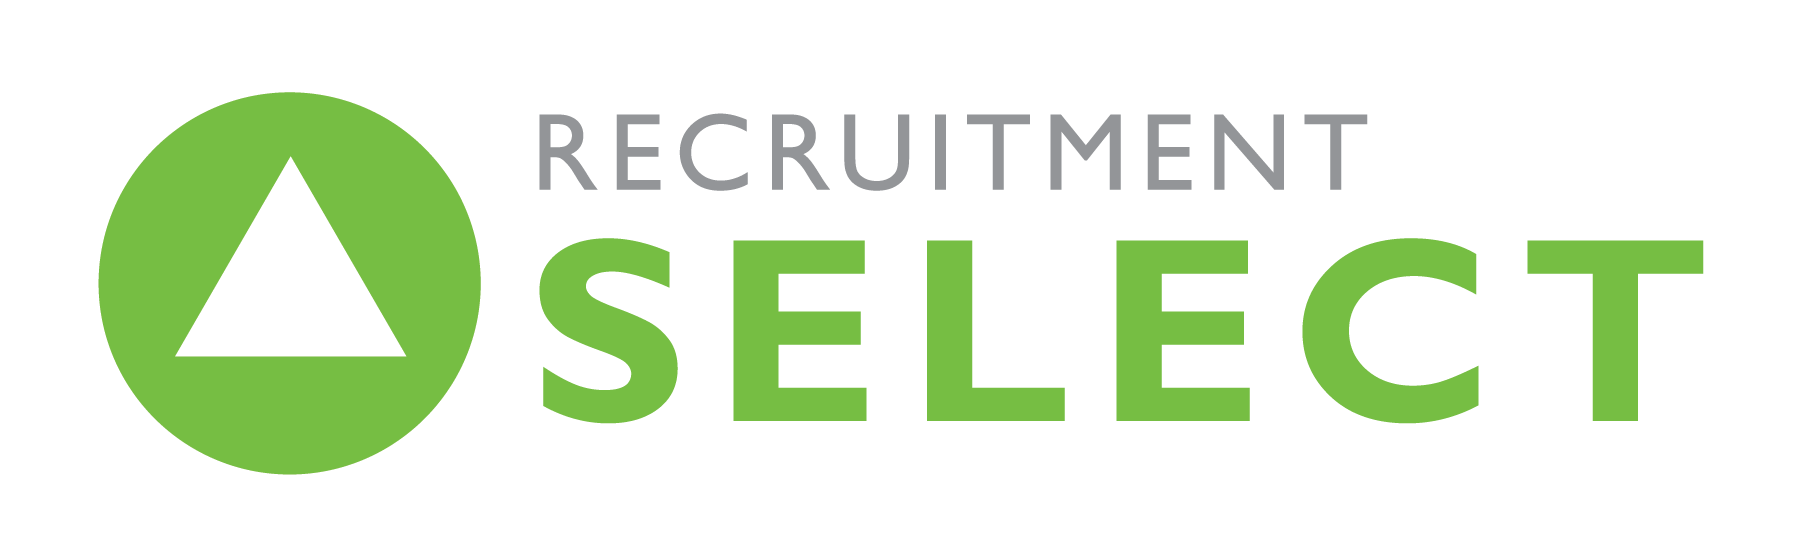 Recruitment Select